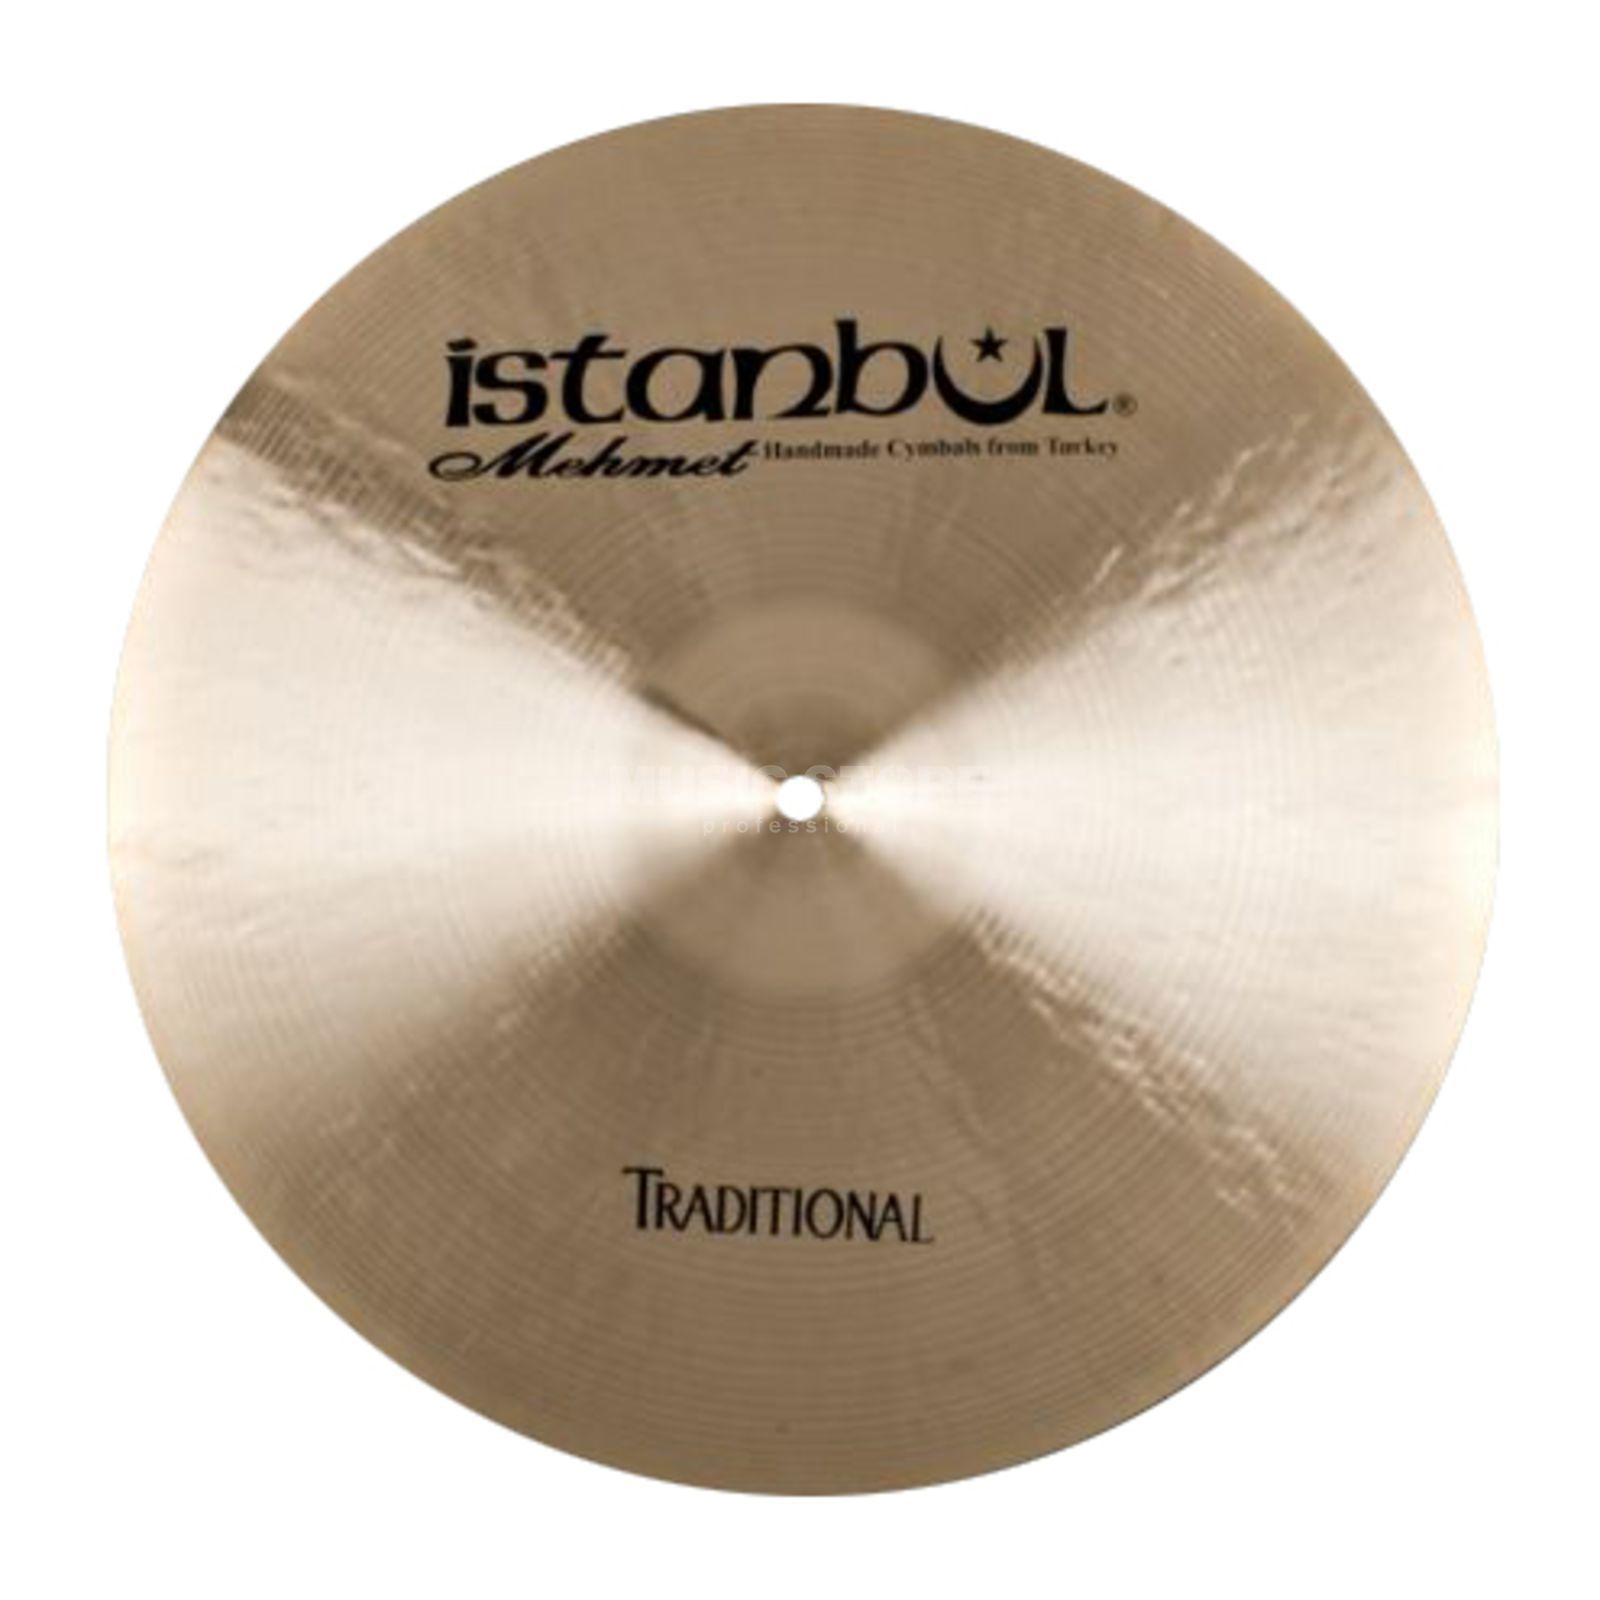 "Istanbul Traditional Dark Crash 16"", CD16 Imagem do produto"